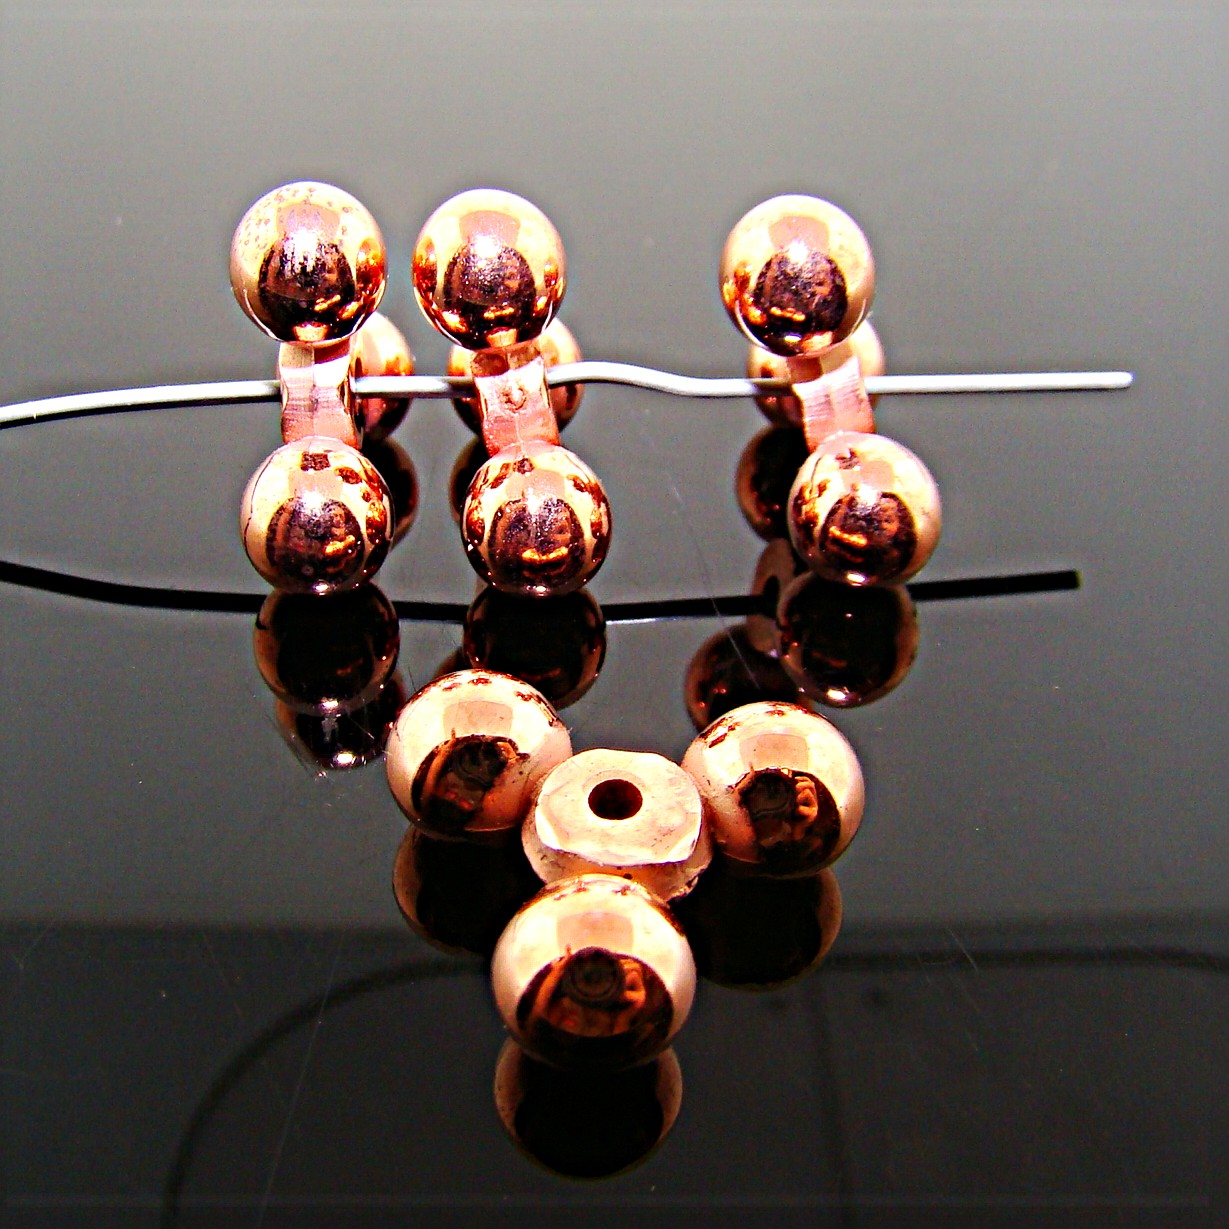 15MM COPPER COATED TRI BALL SPACER BEADS - Lot of 12